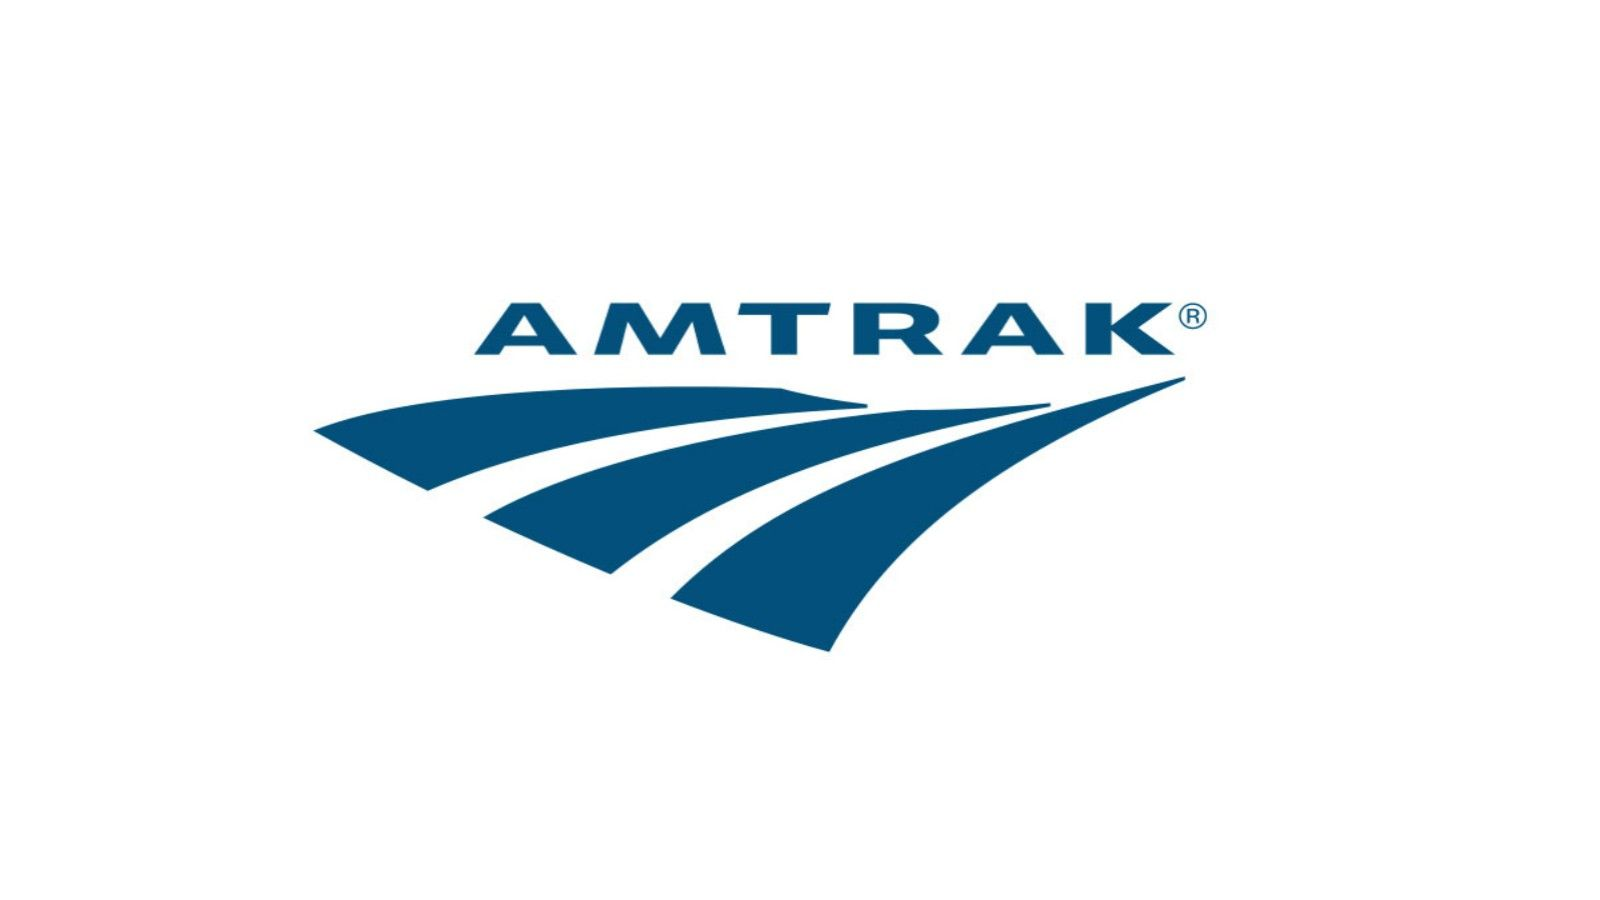 SPG Redemptions | Amtrak